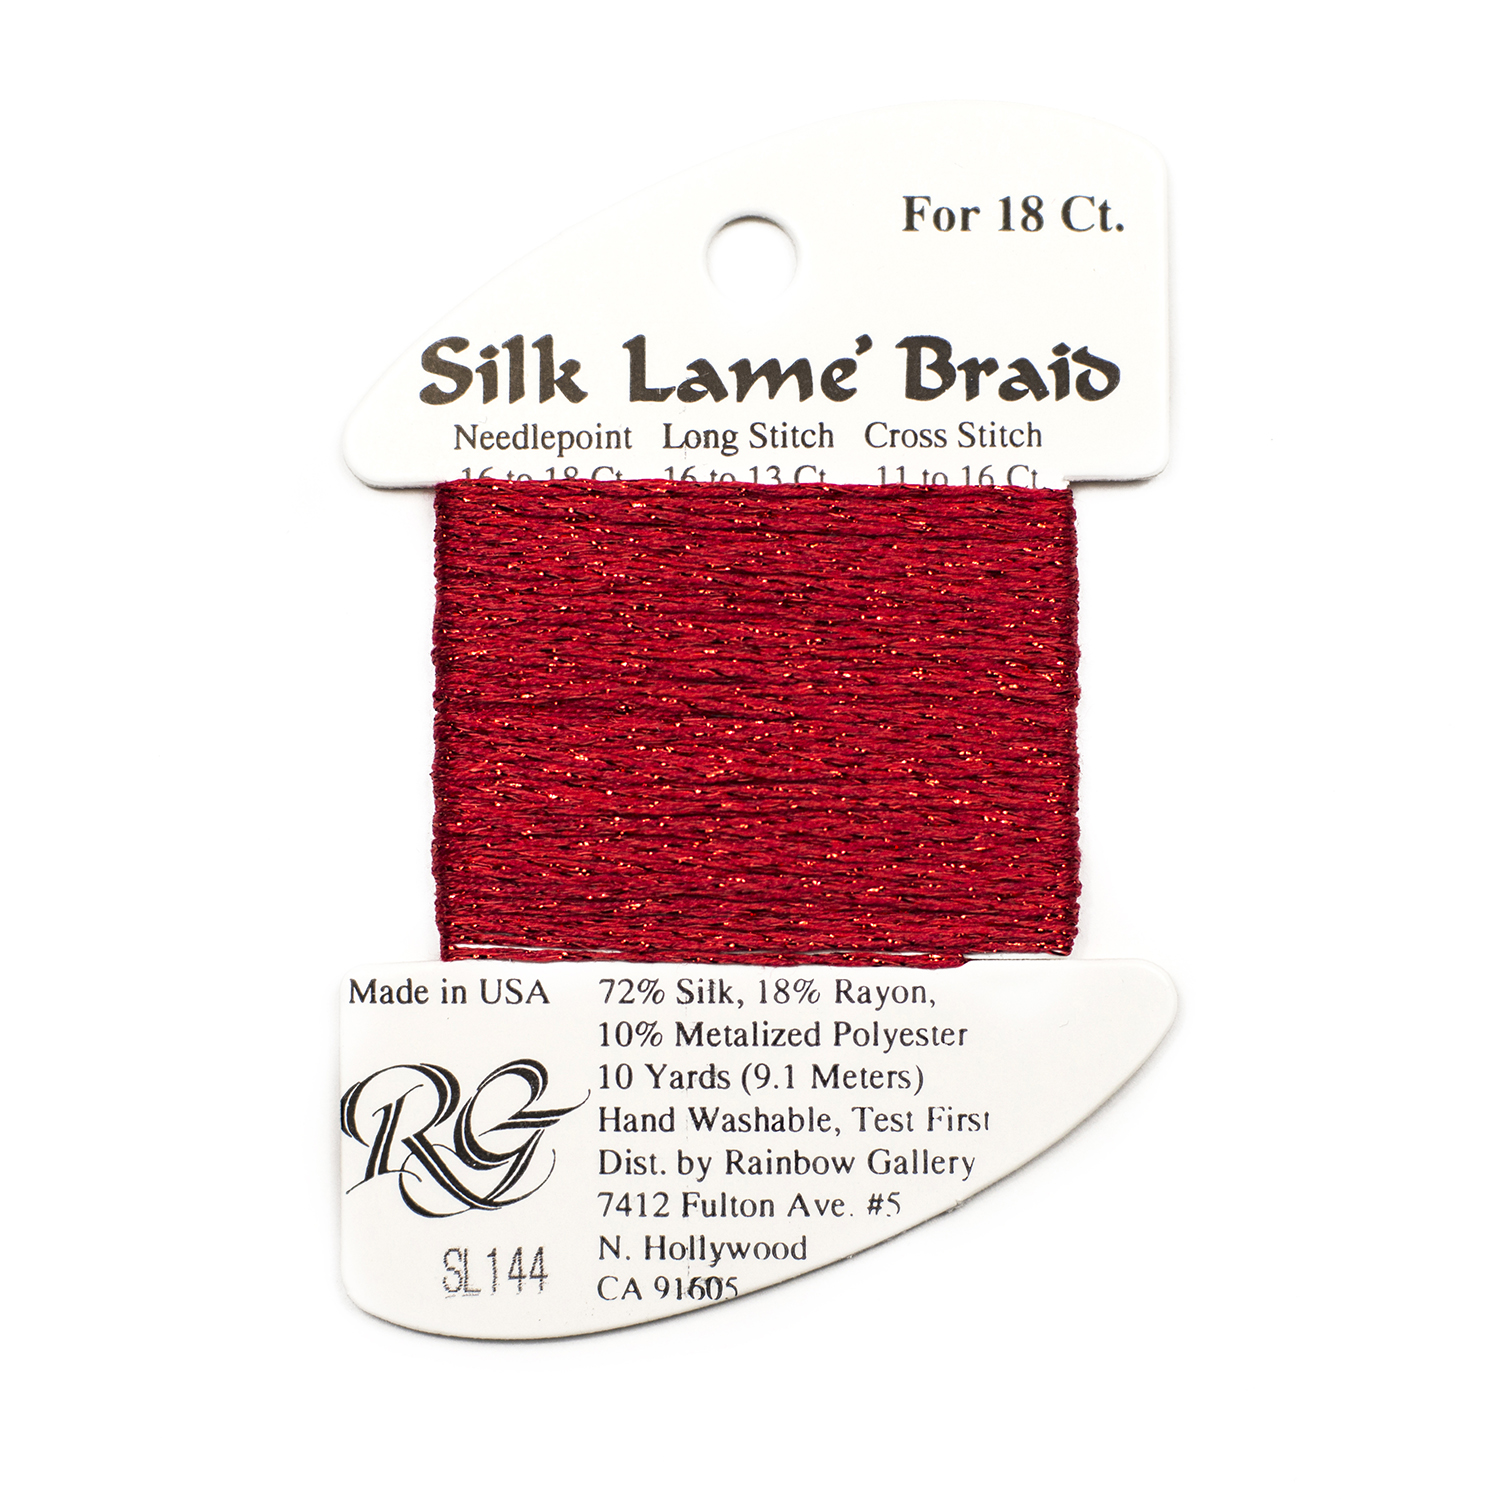 Nashville Needleworks - Silk Lame' Braid